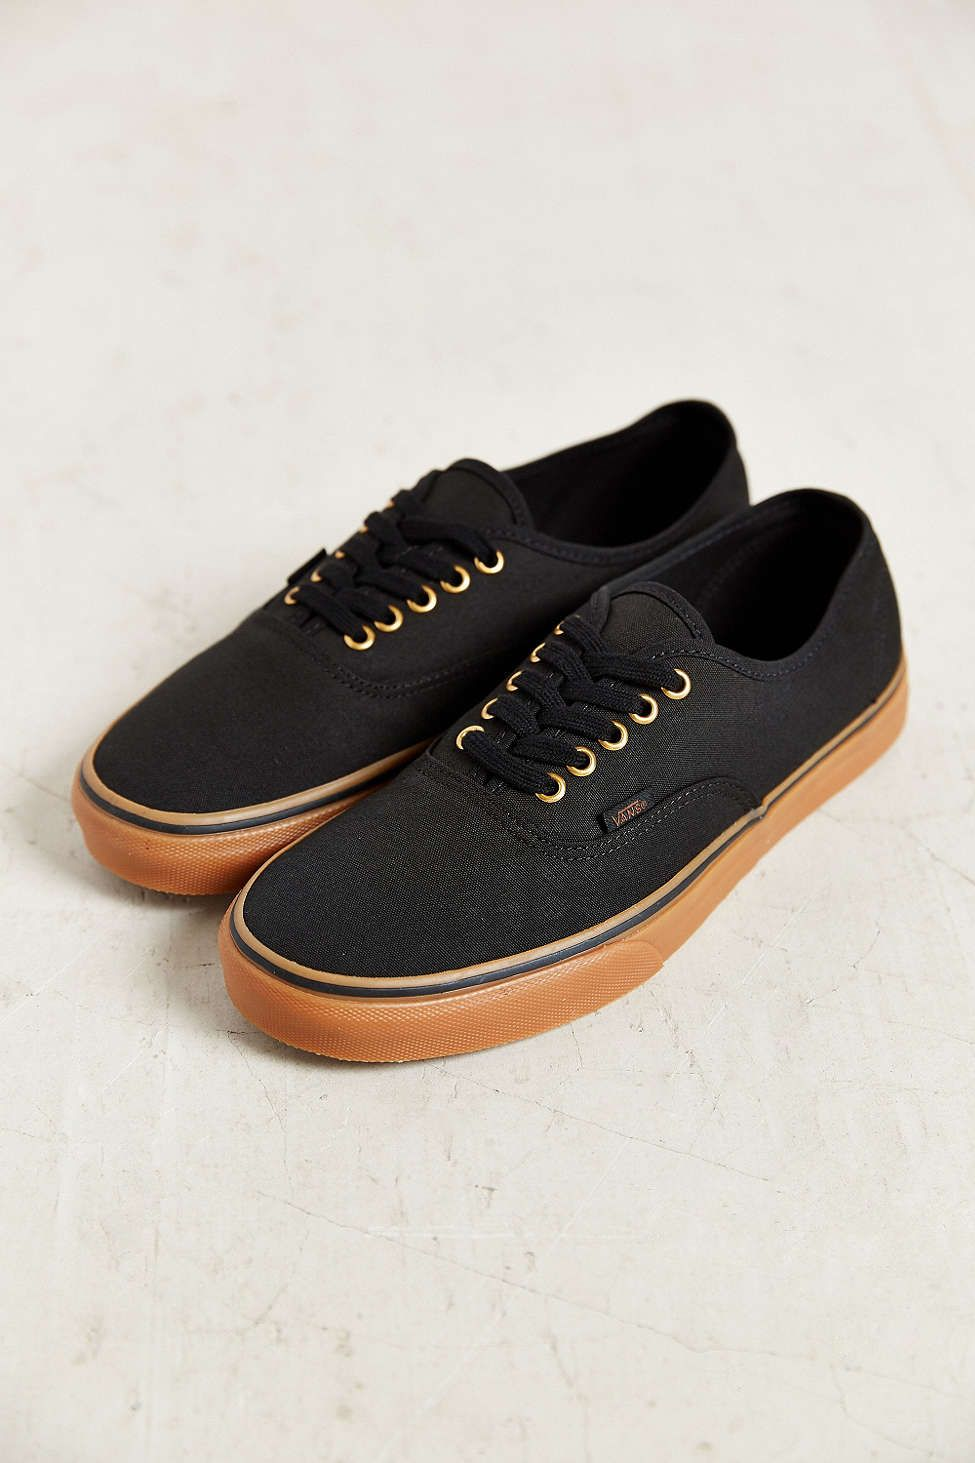 Vans Authentic Gum-Sole Mens Sneaker - Urban Outfitters  583f524e5